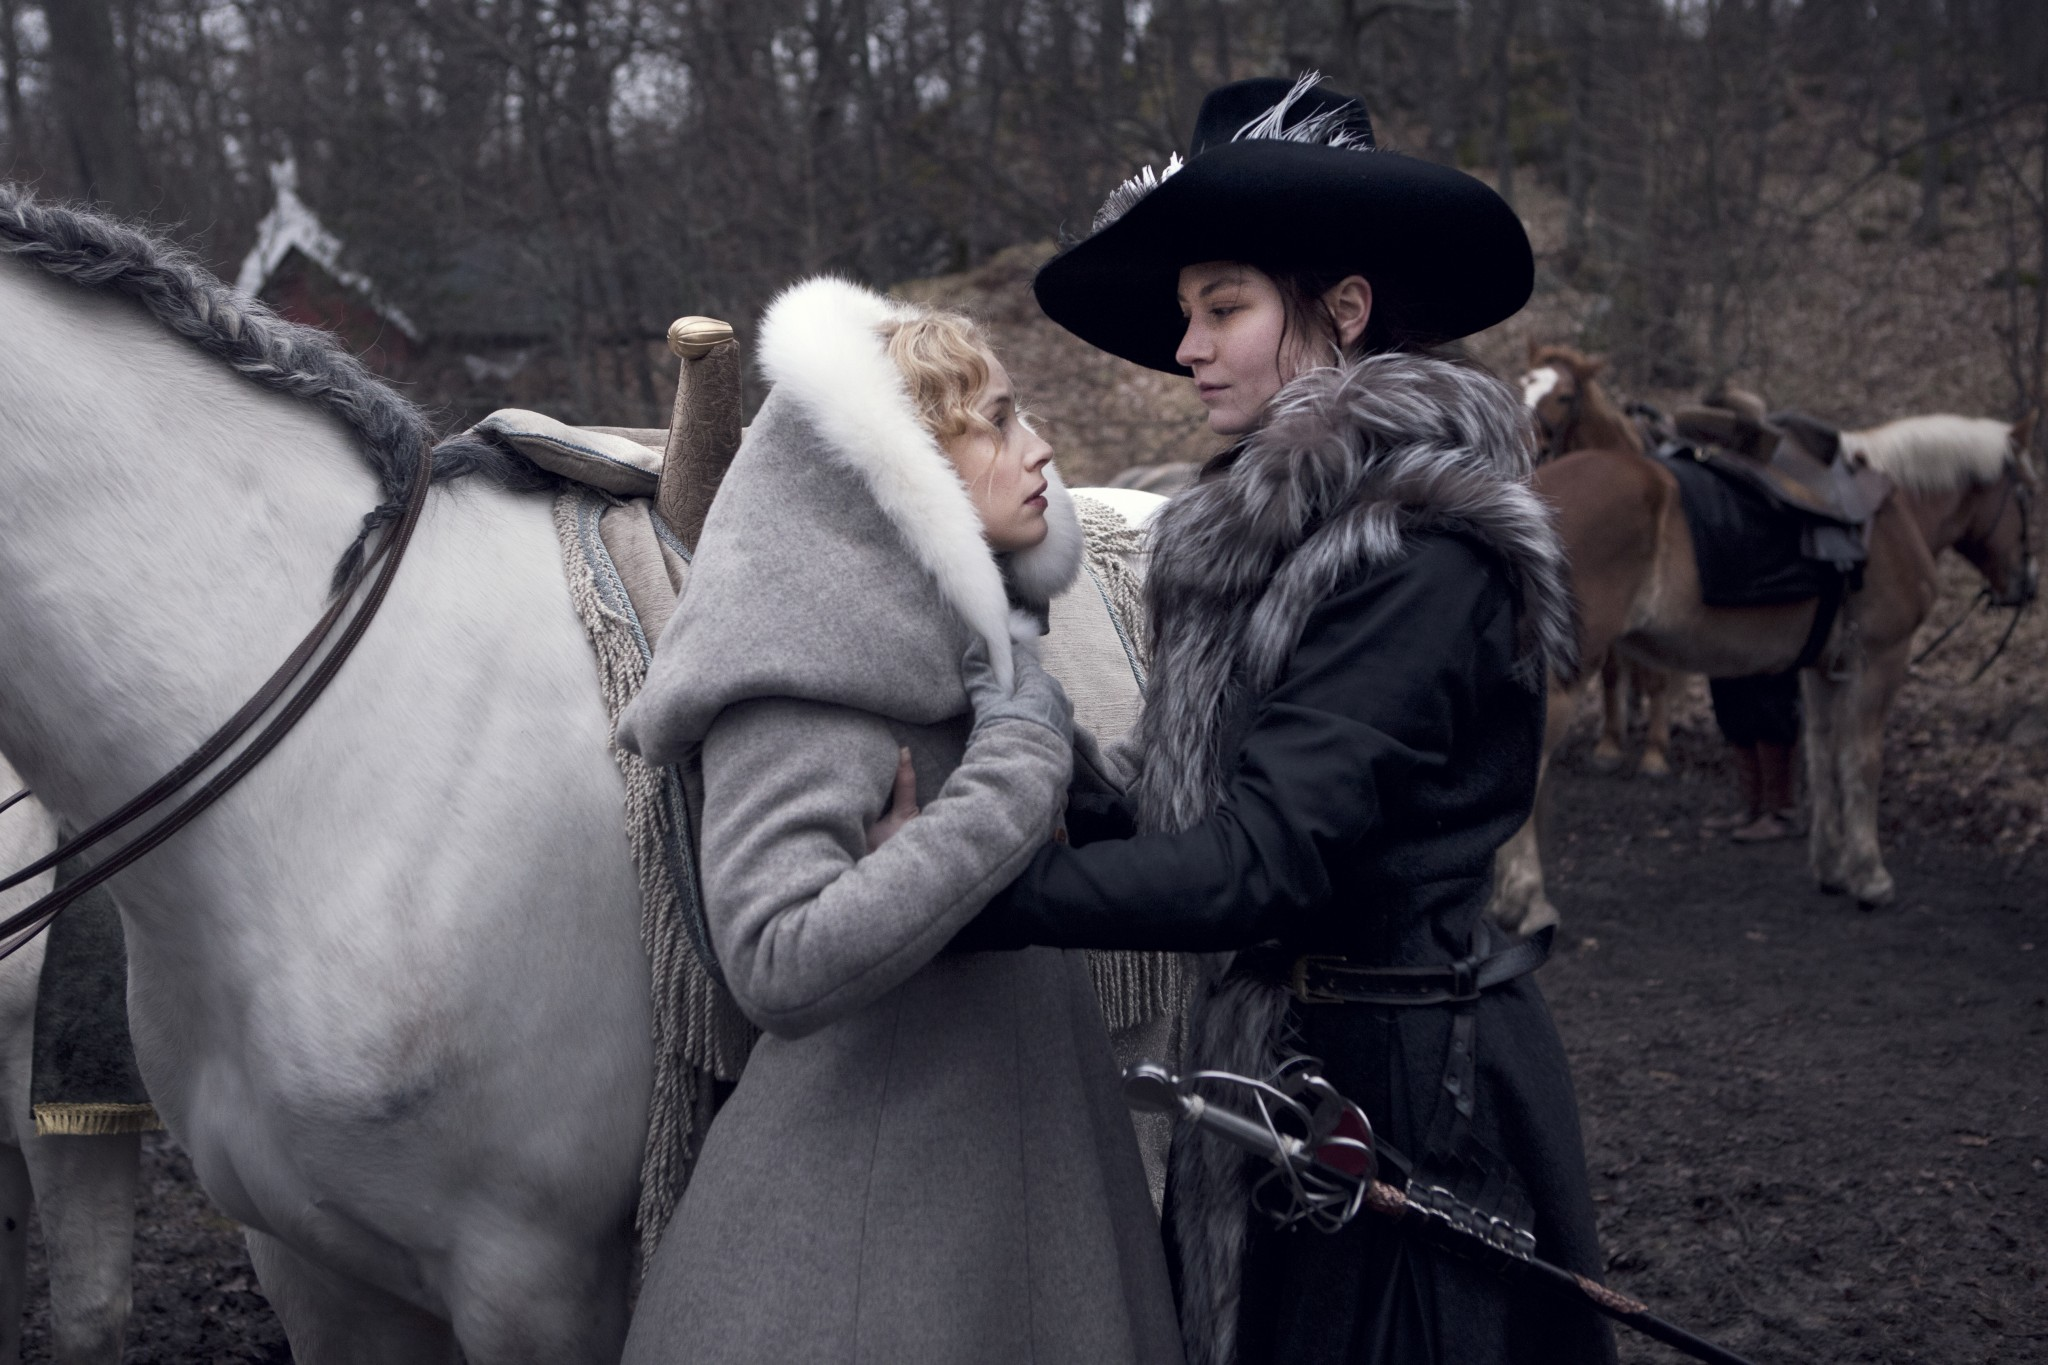 11. TGK Queen Kristina and Ebba Sparre MG_3059